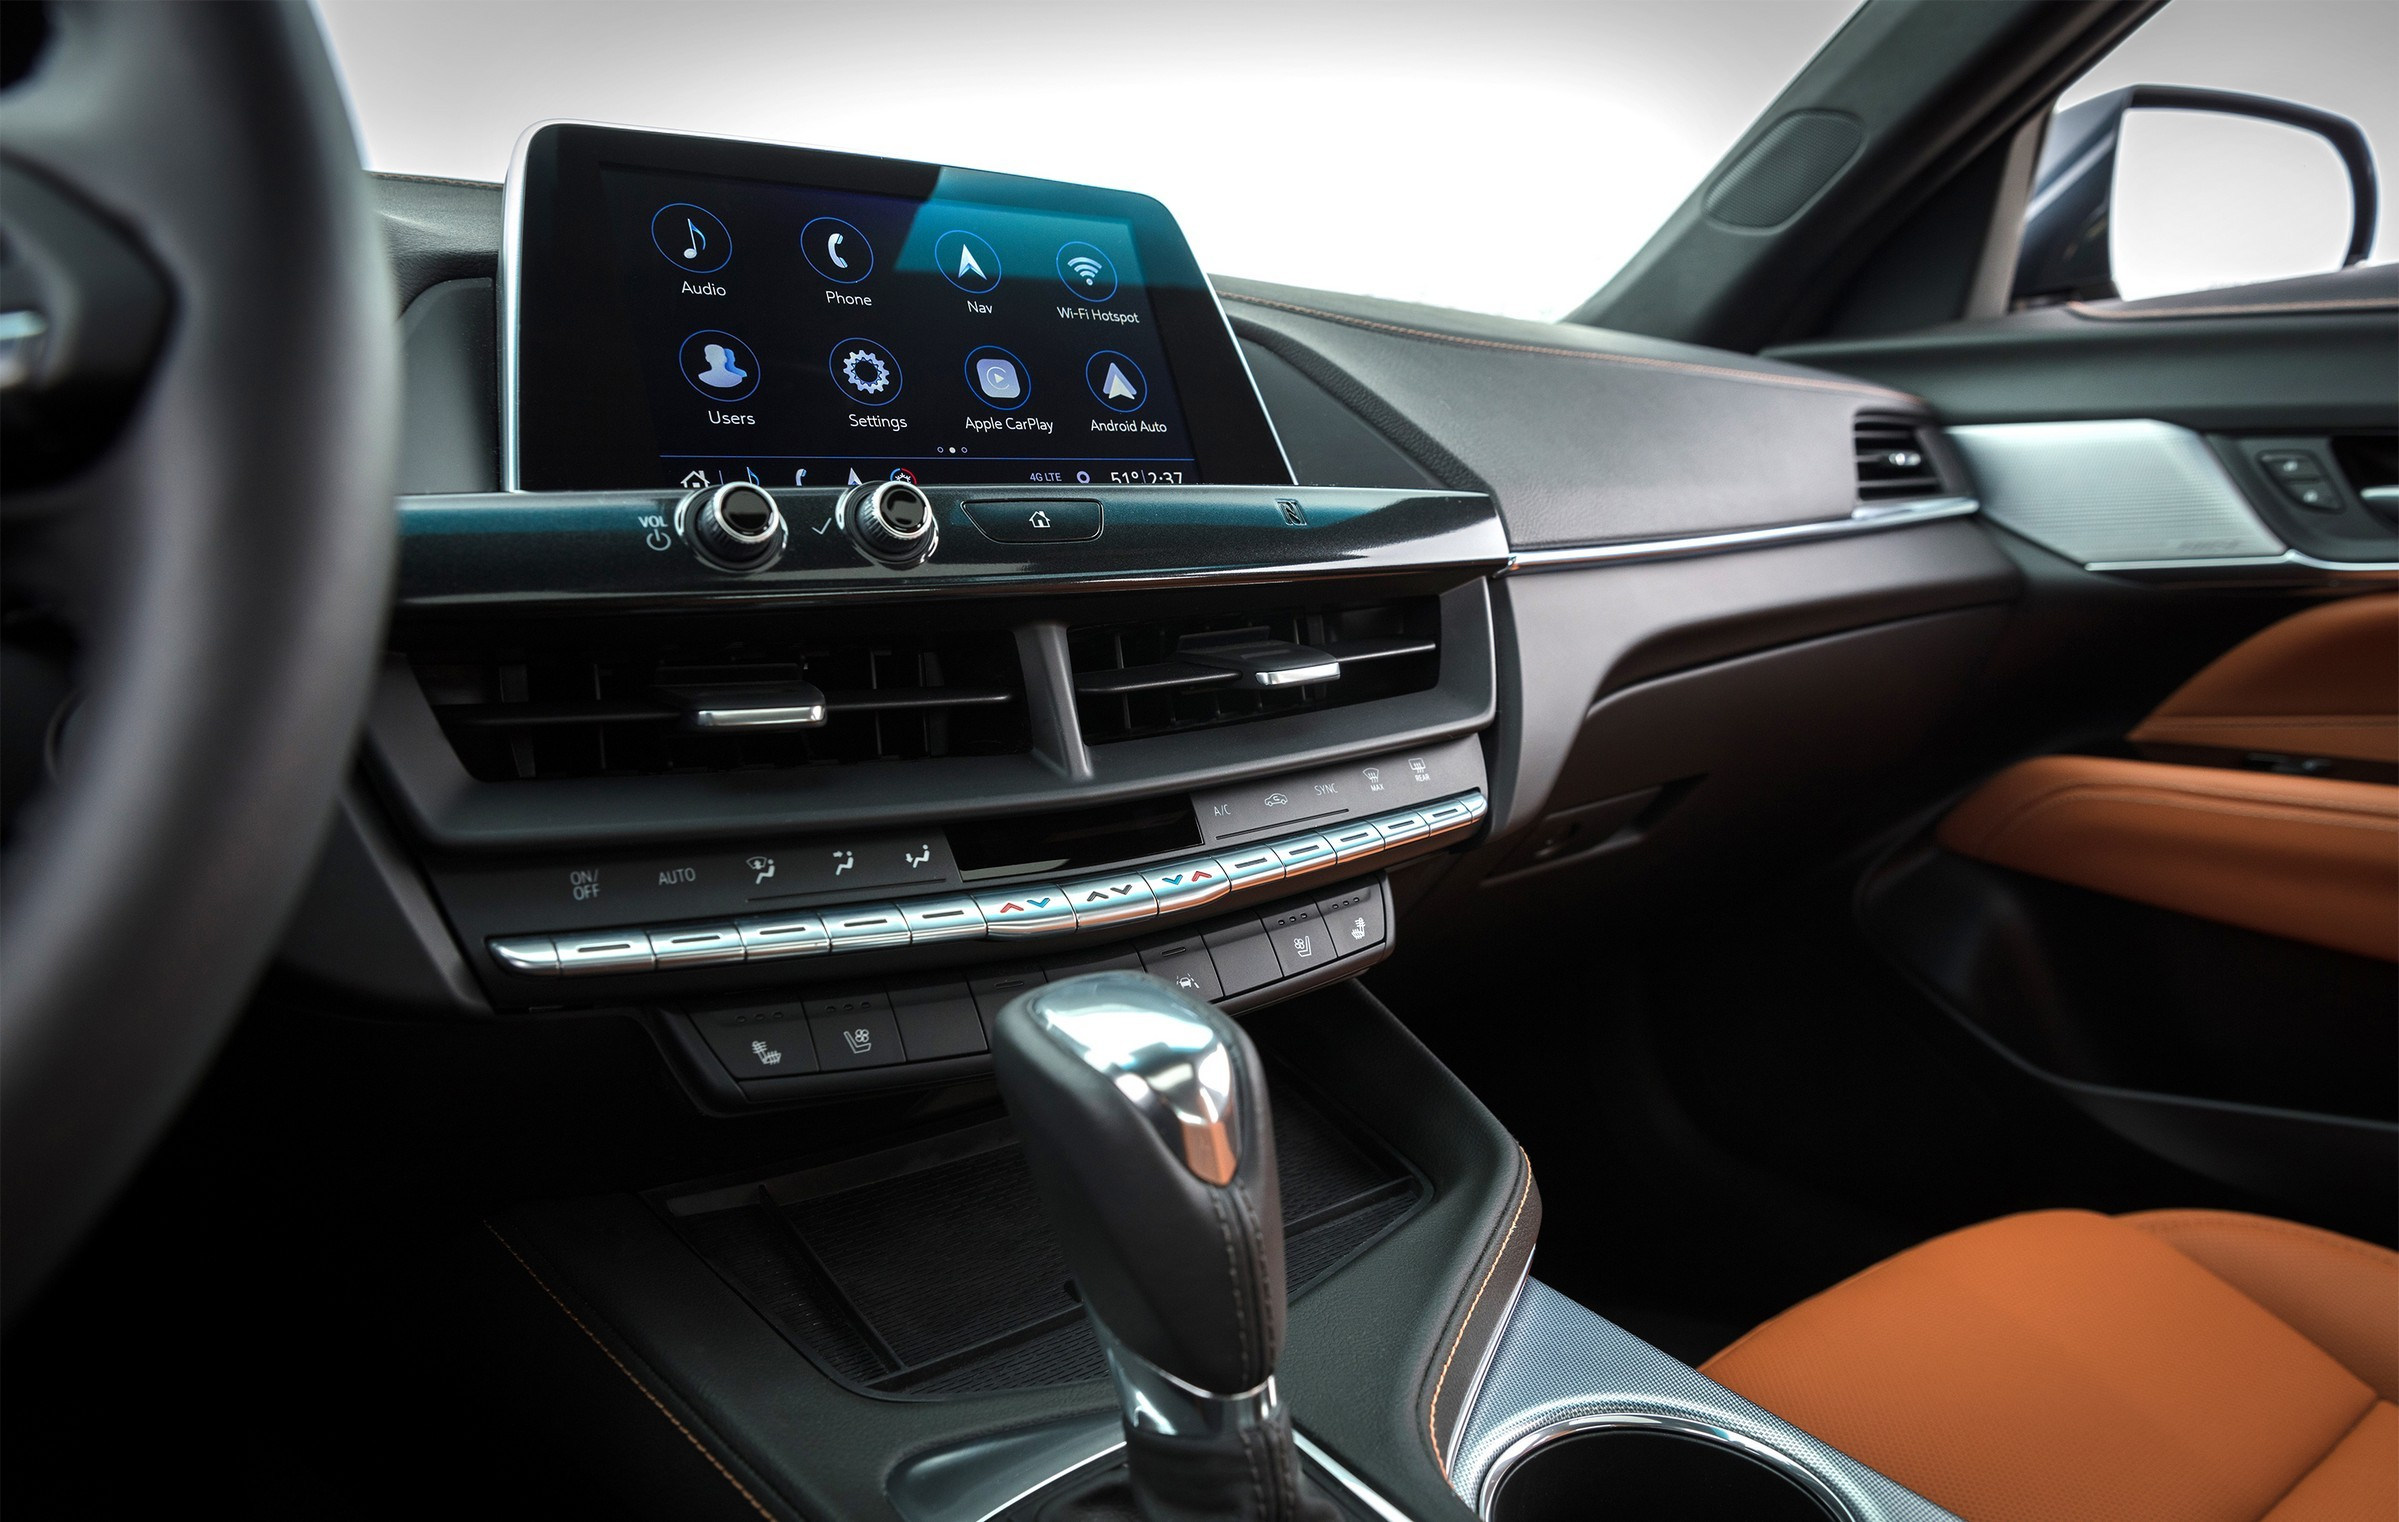 2020 Cadillac Ct4 Getting Super Cruise Hands Free Driving